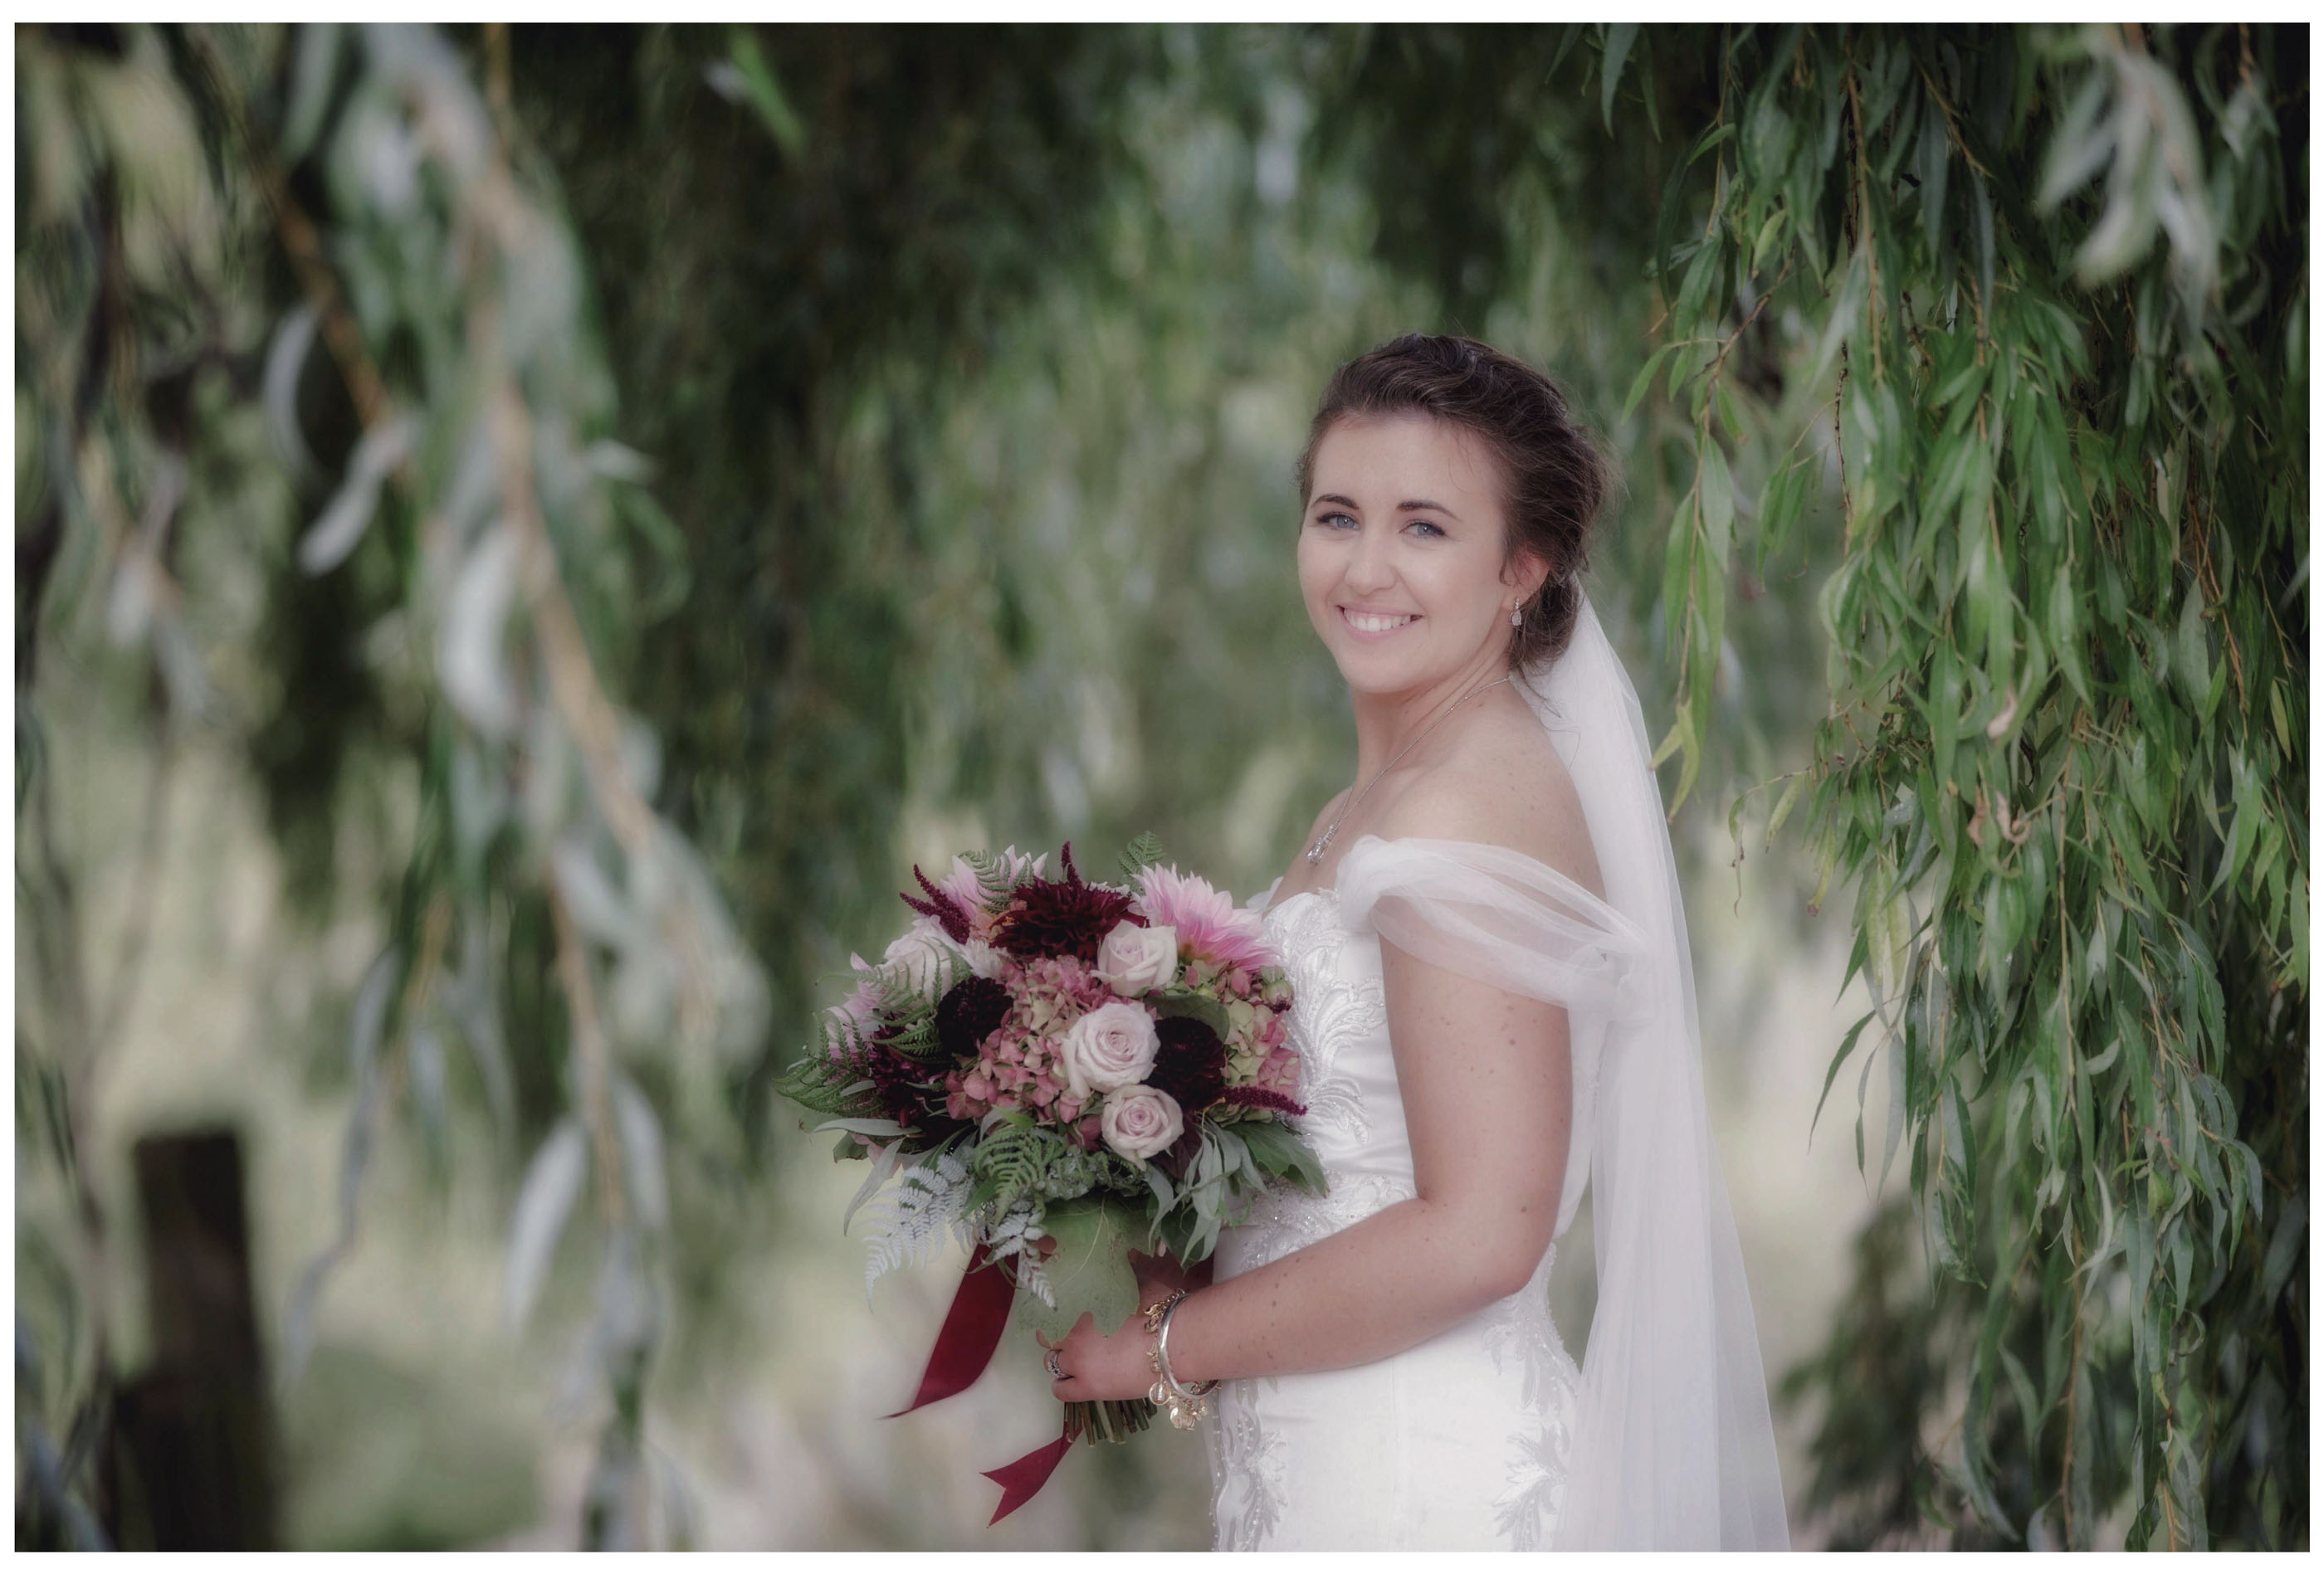 Bride in white lace top wedding dress with flowers under willow tree in Kumeu